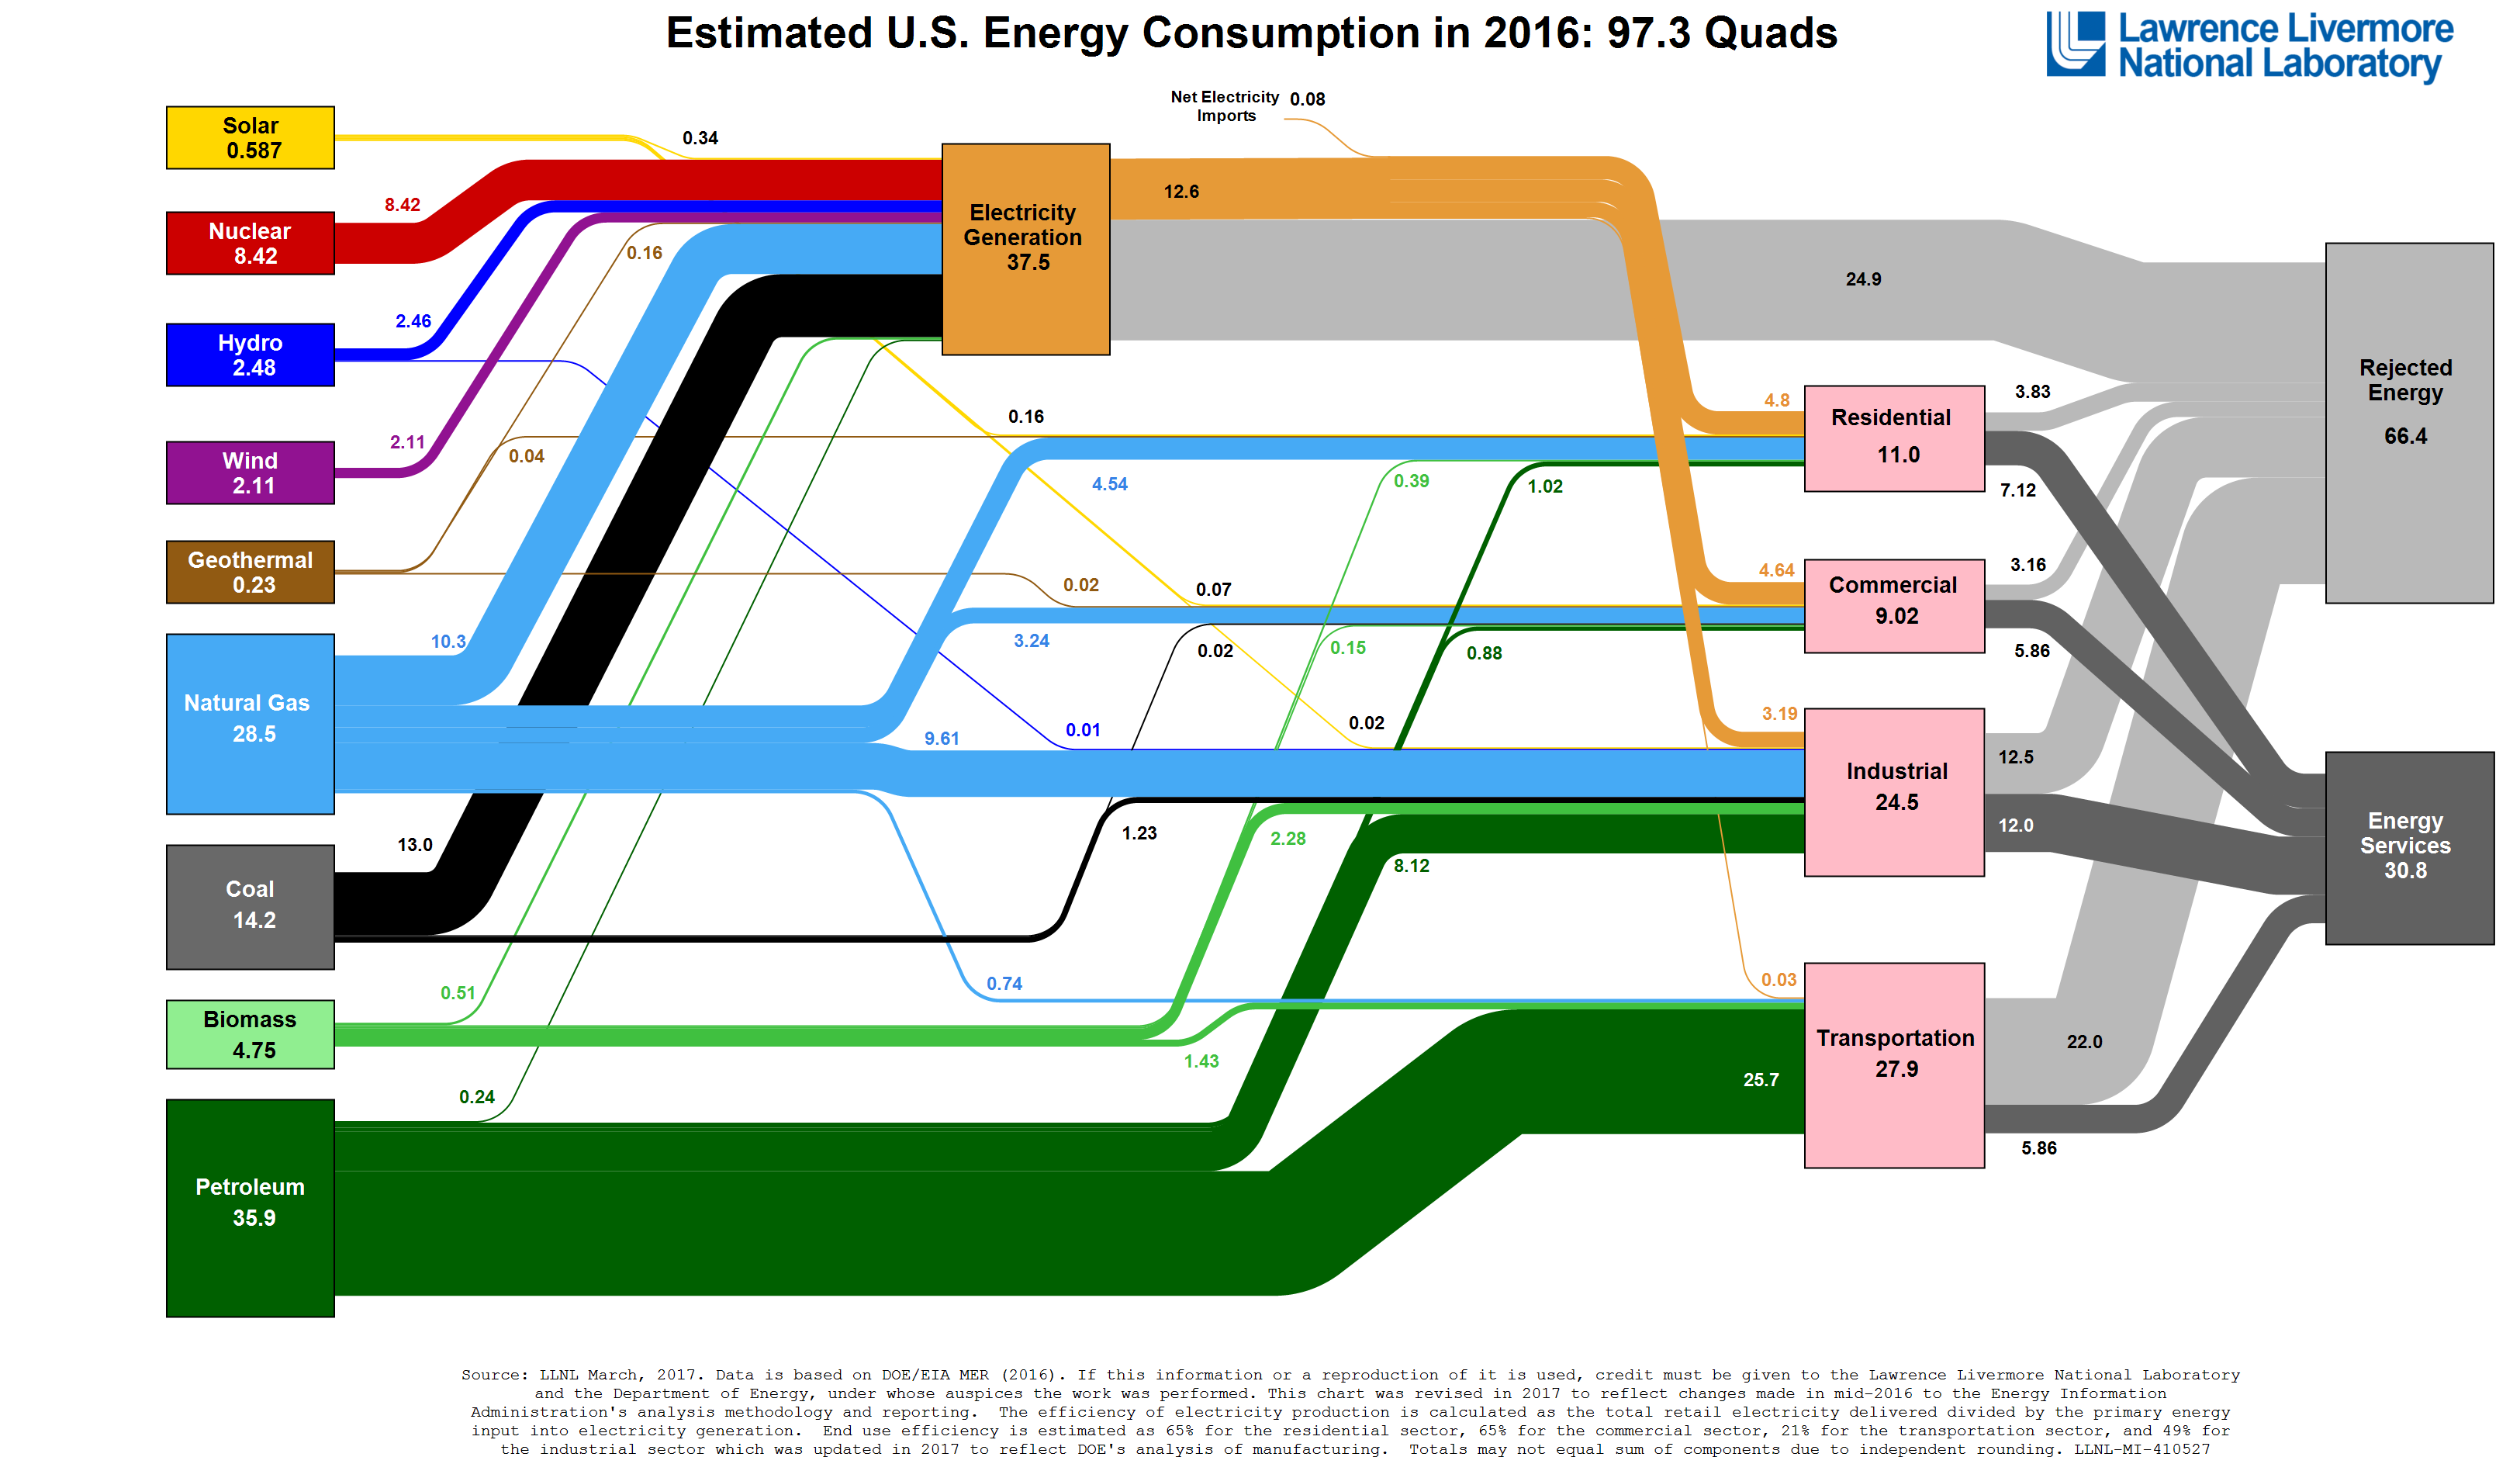 A chart showing energy flows in the U.S. in 2015